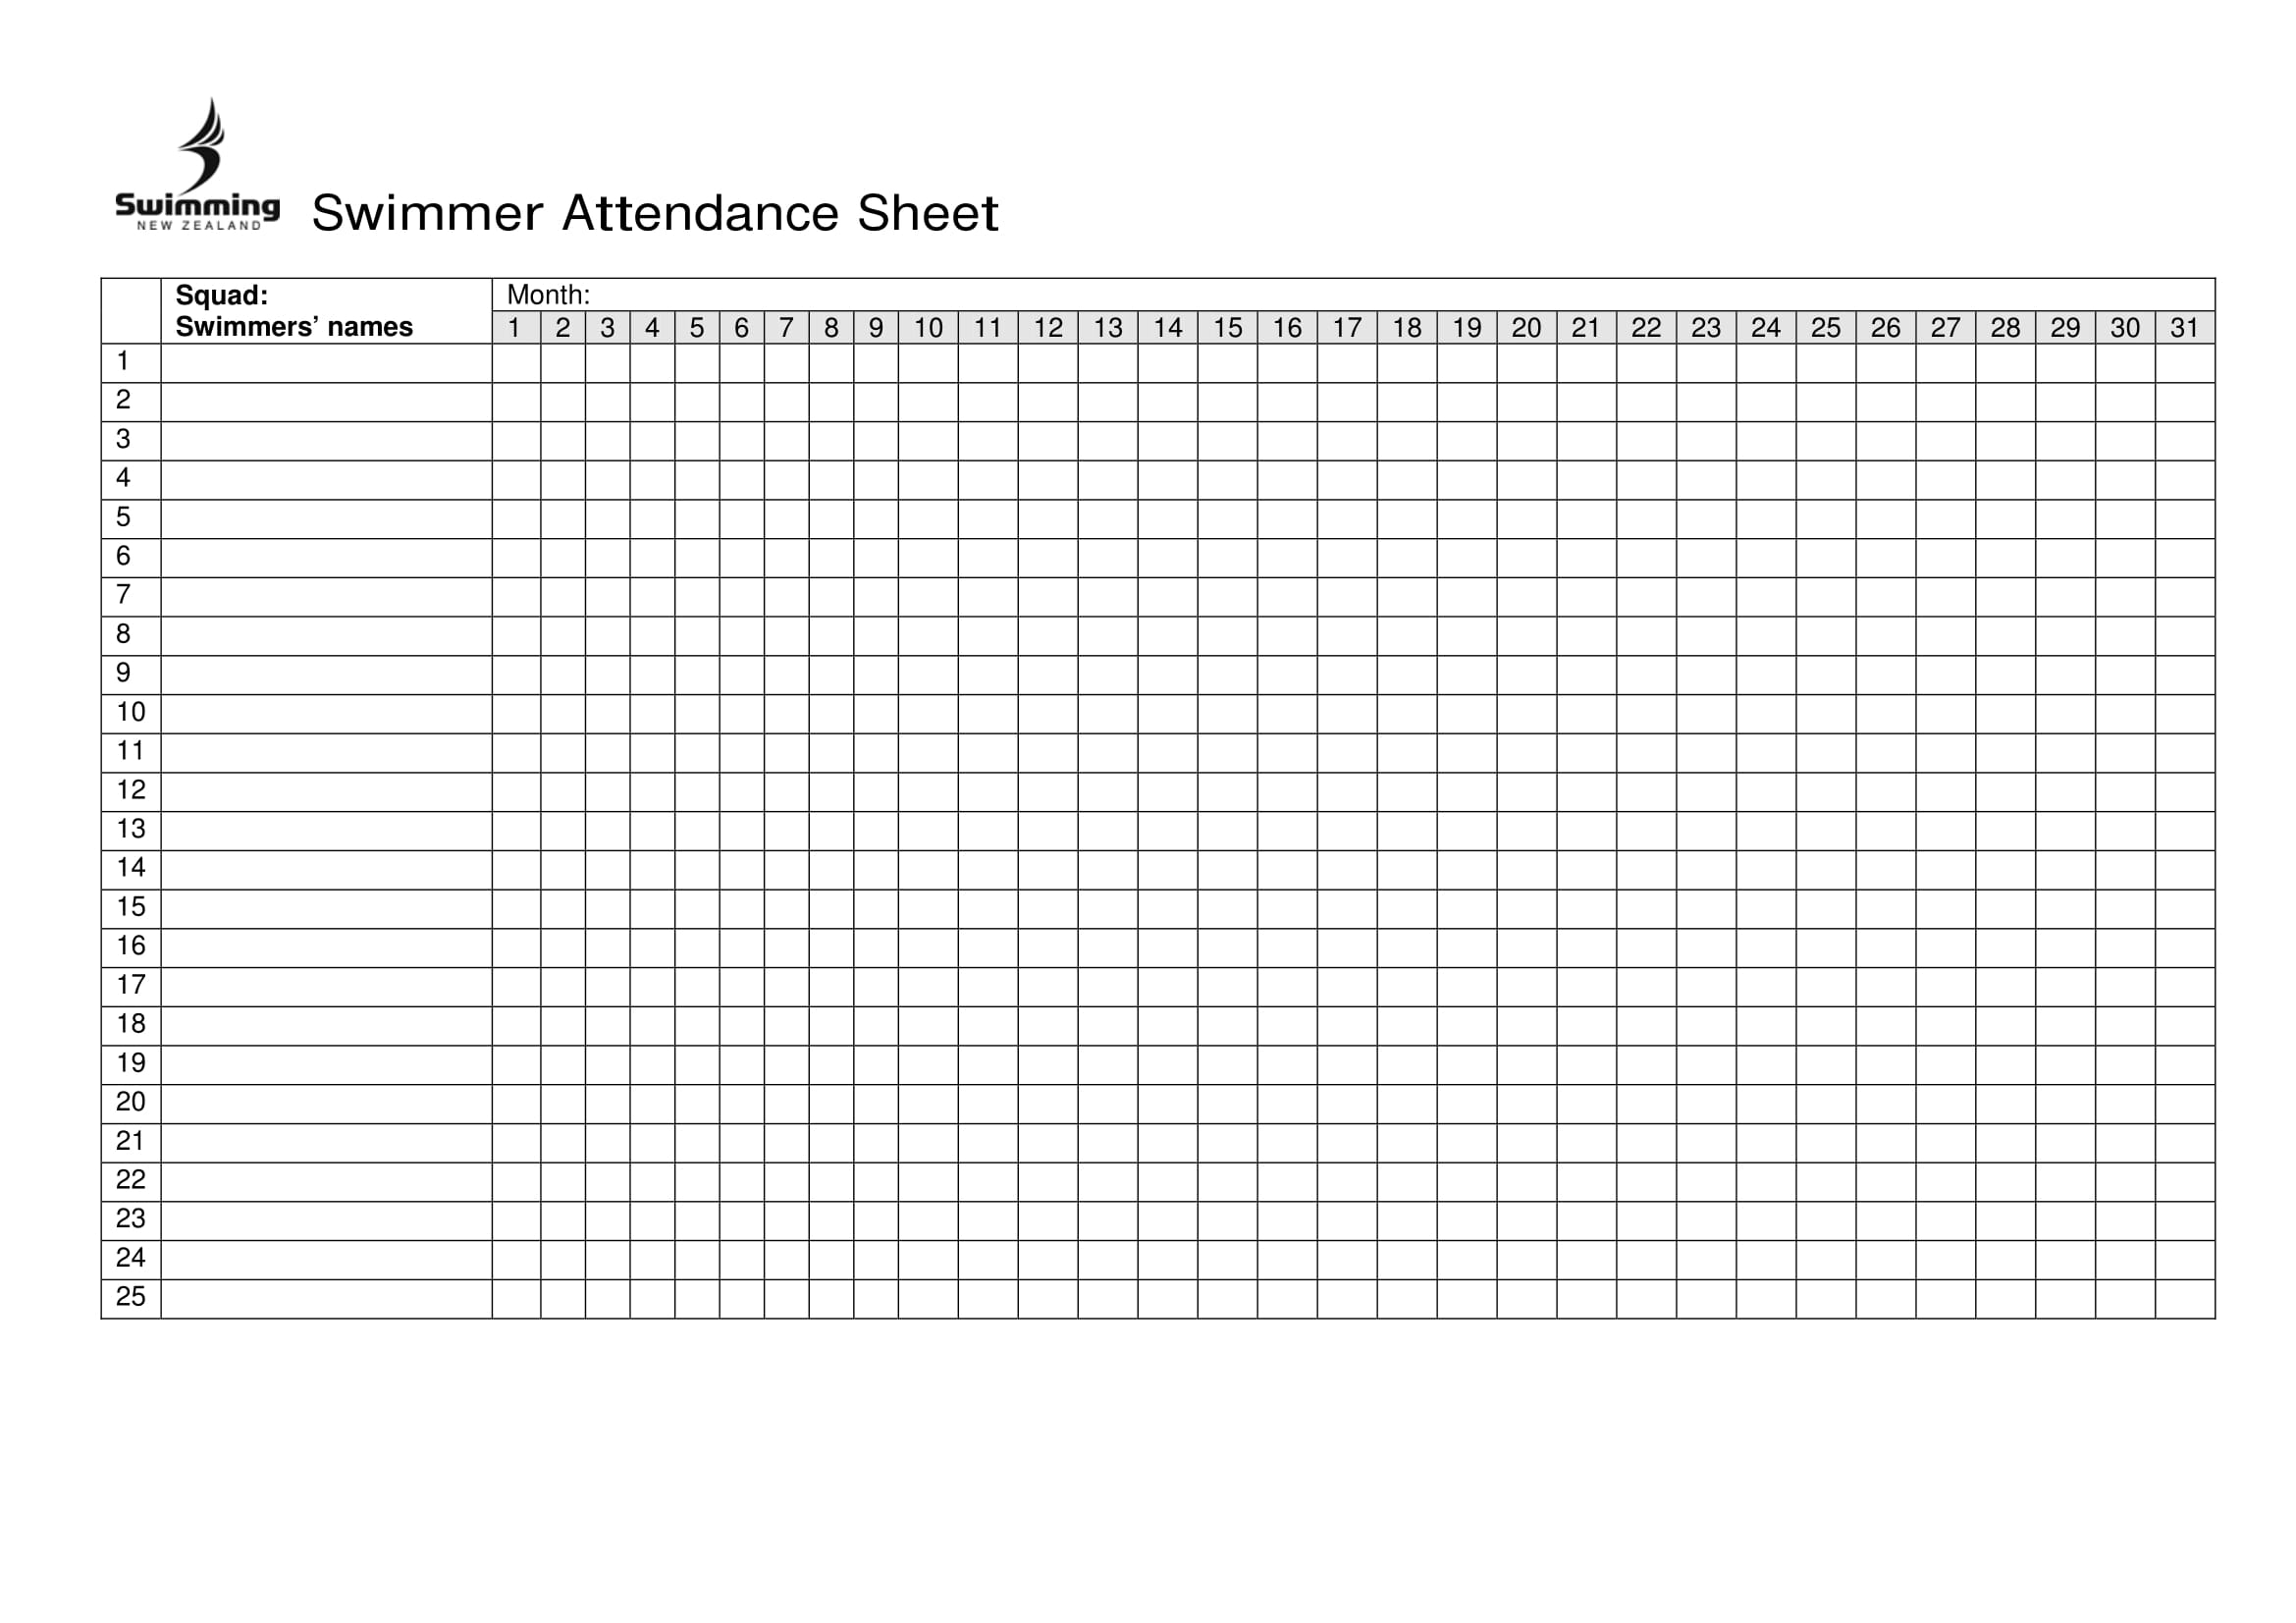 swimmer attendance sheet example